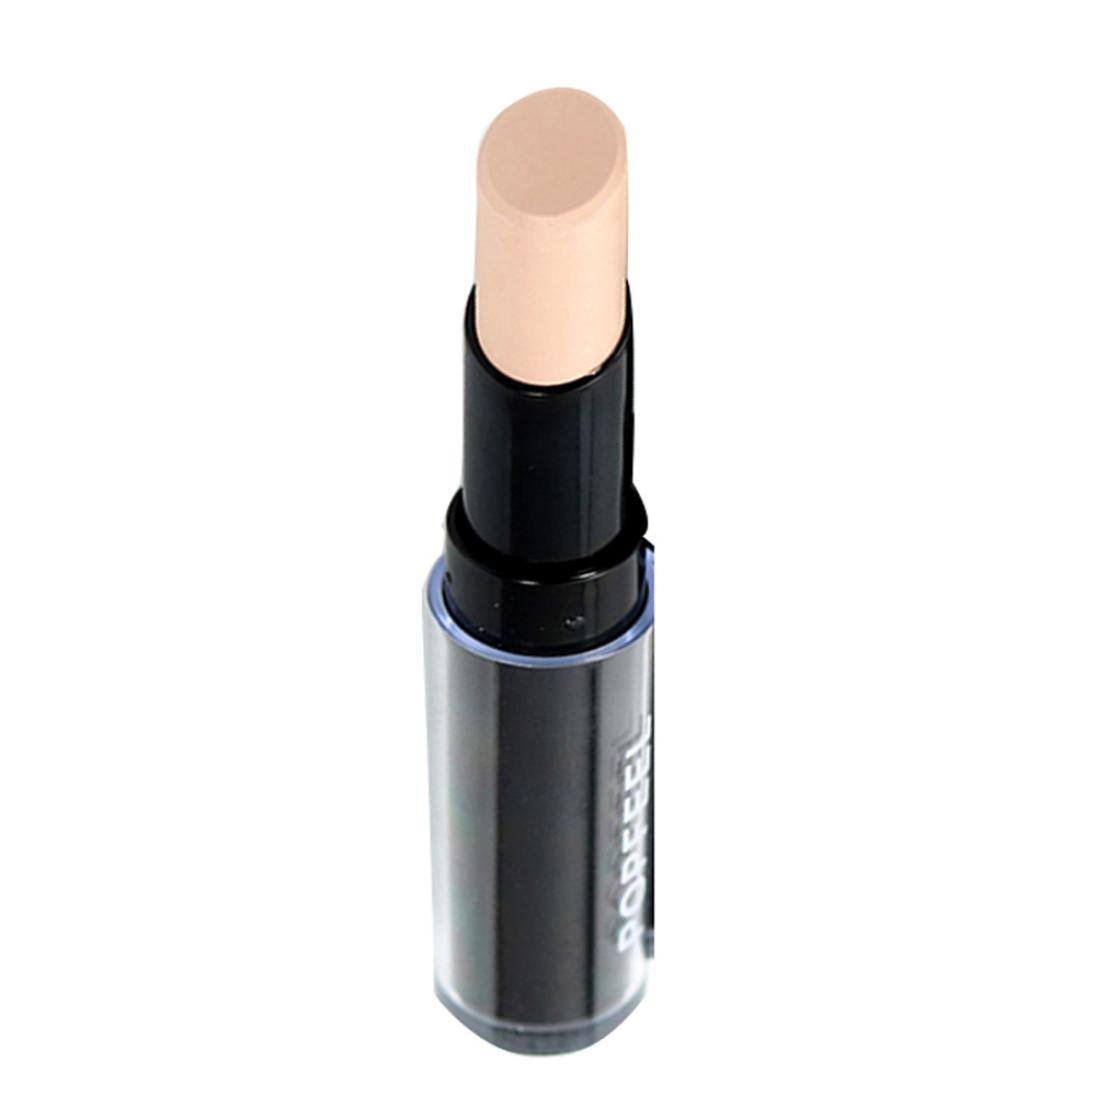 Willtoo(TM) Makeup Natrual Cream Face Lips Concealer Highlight Contour Pen Stick (A)